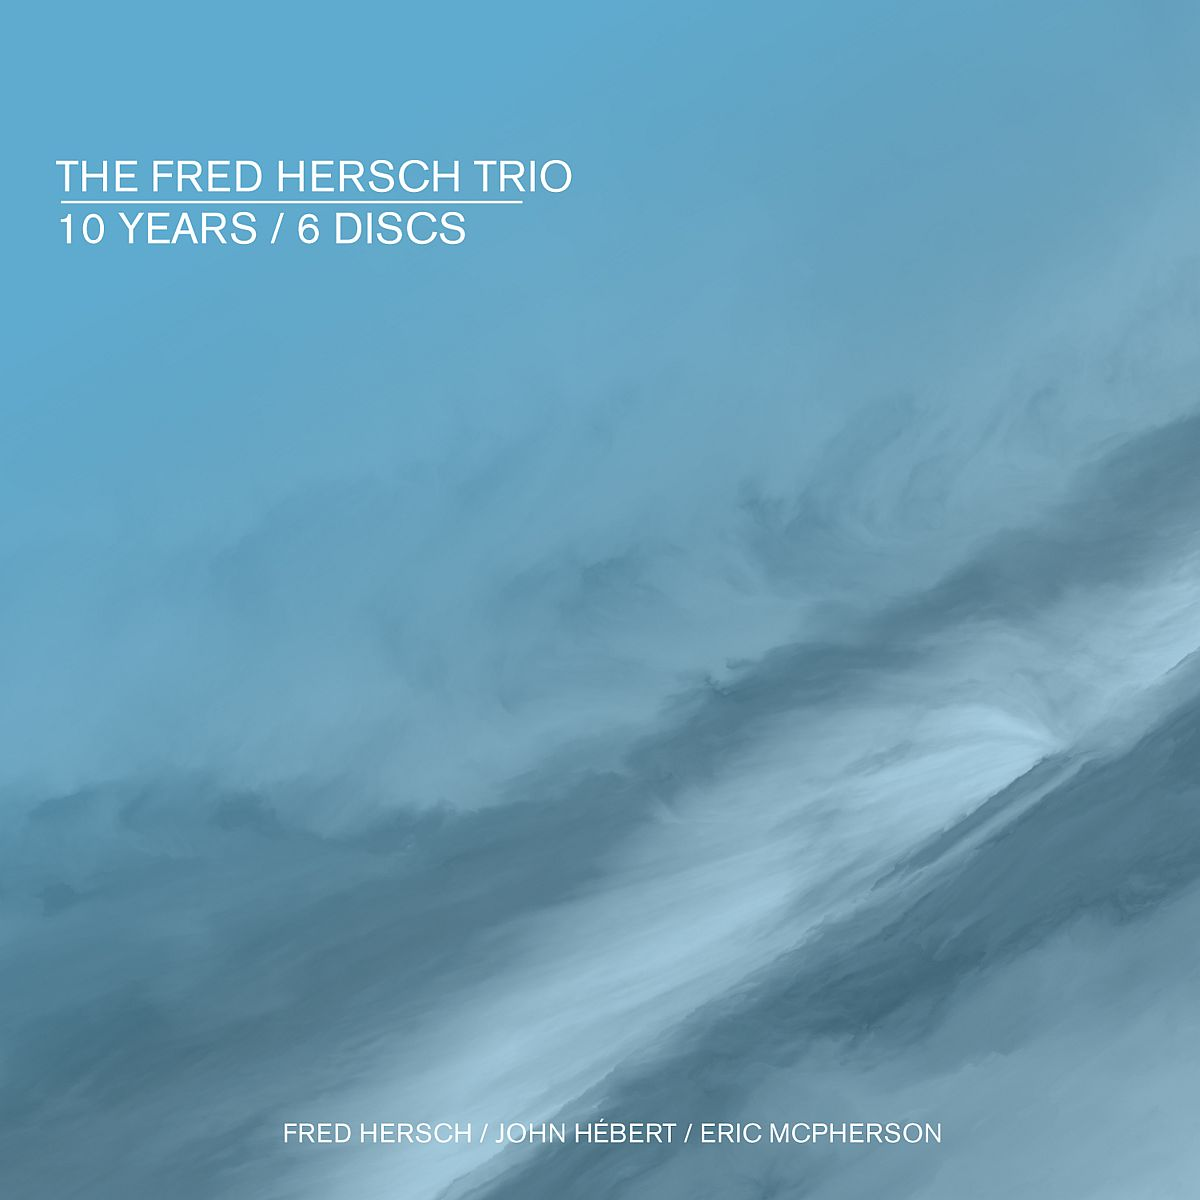 Hersch Trio 10 Years _ 6 Discs 1200pix cover